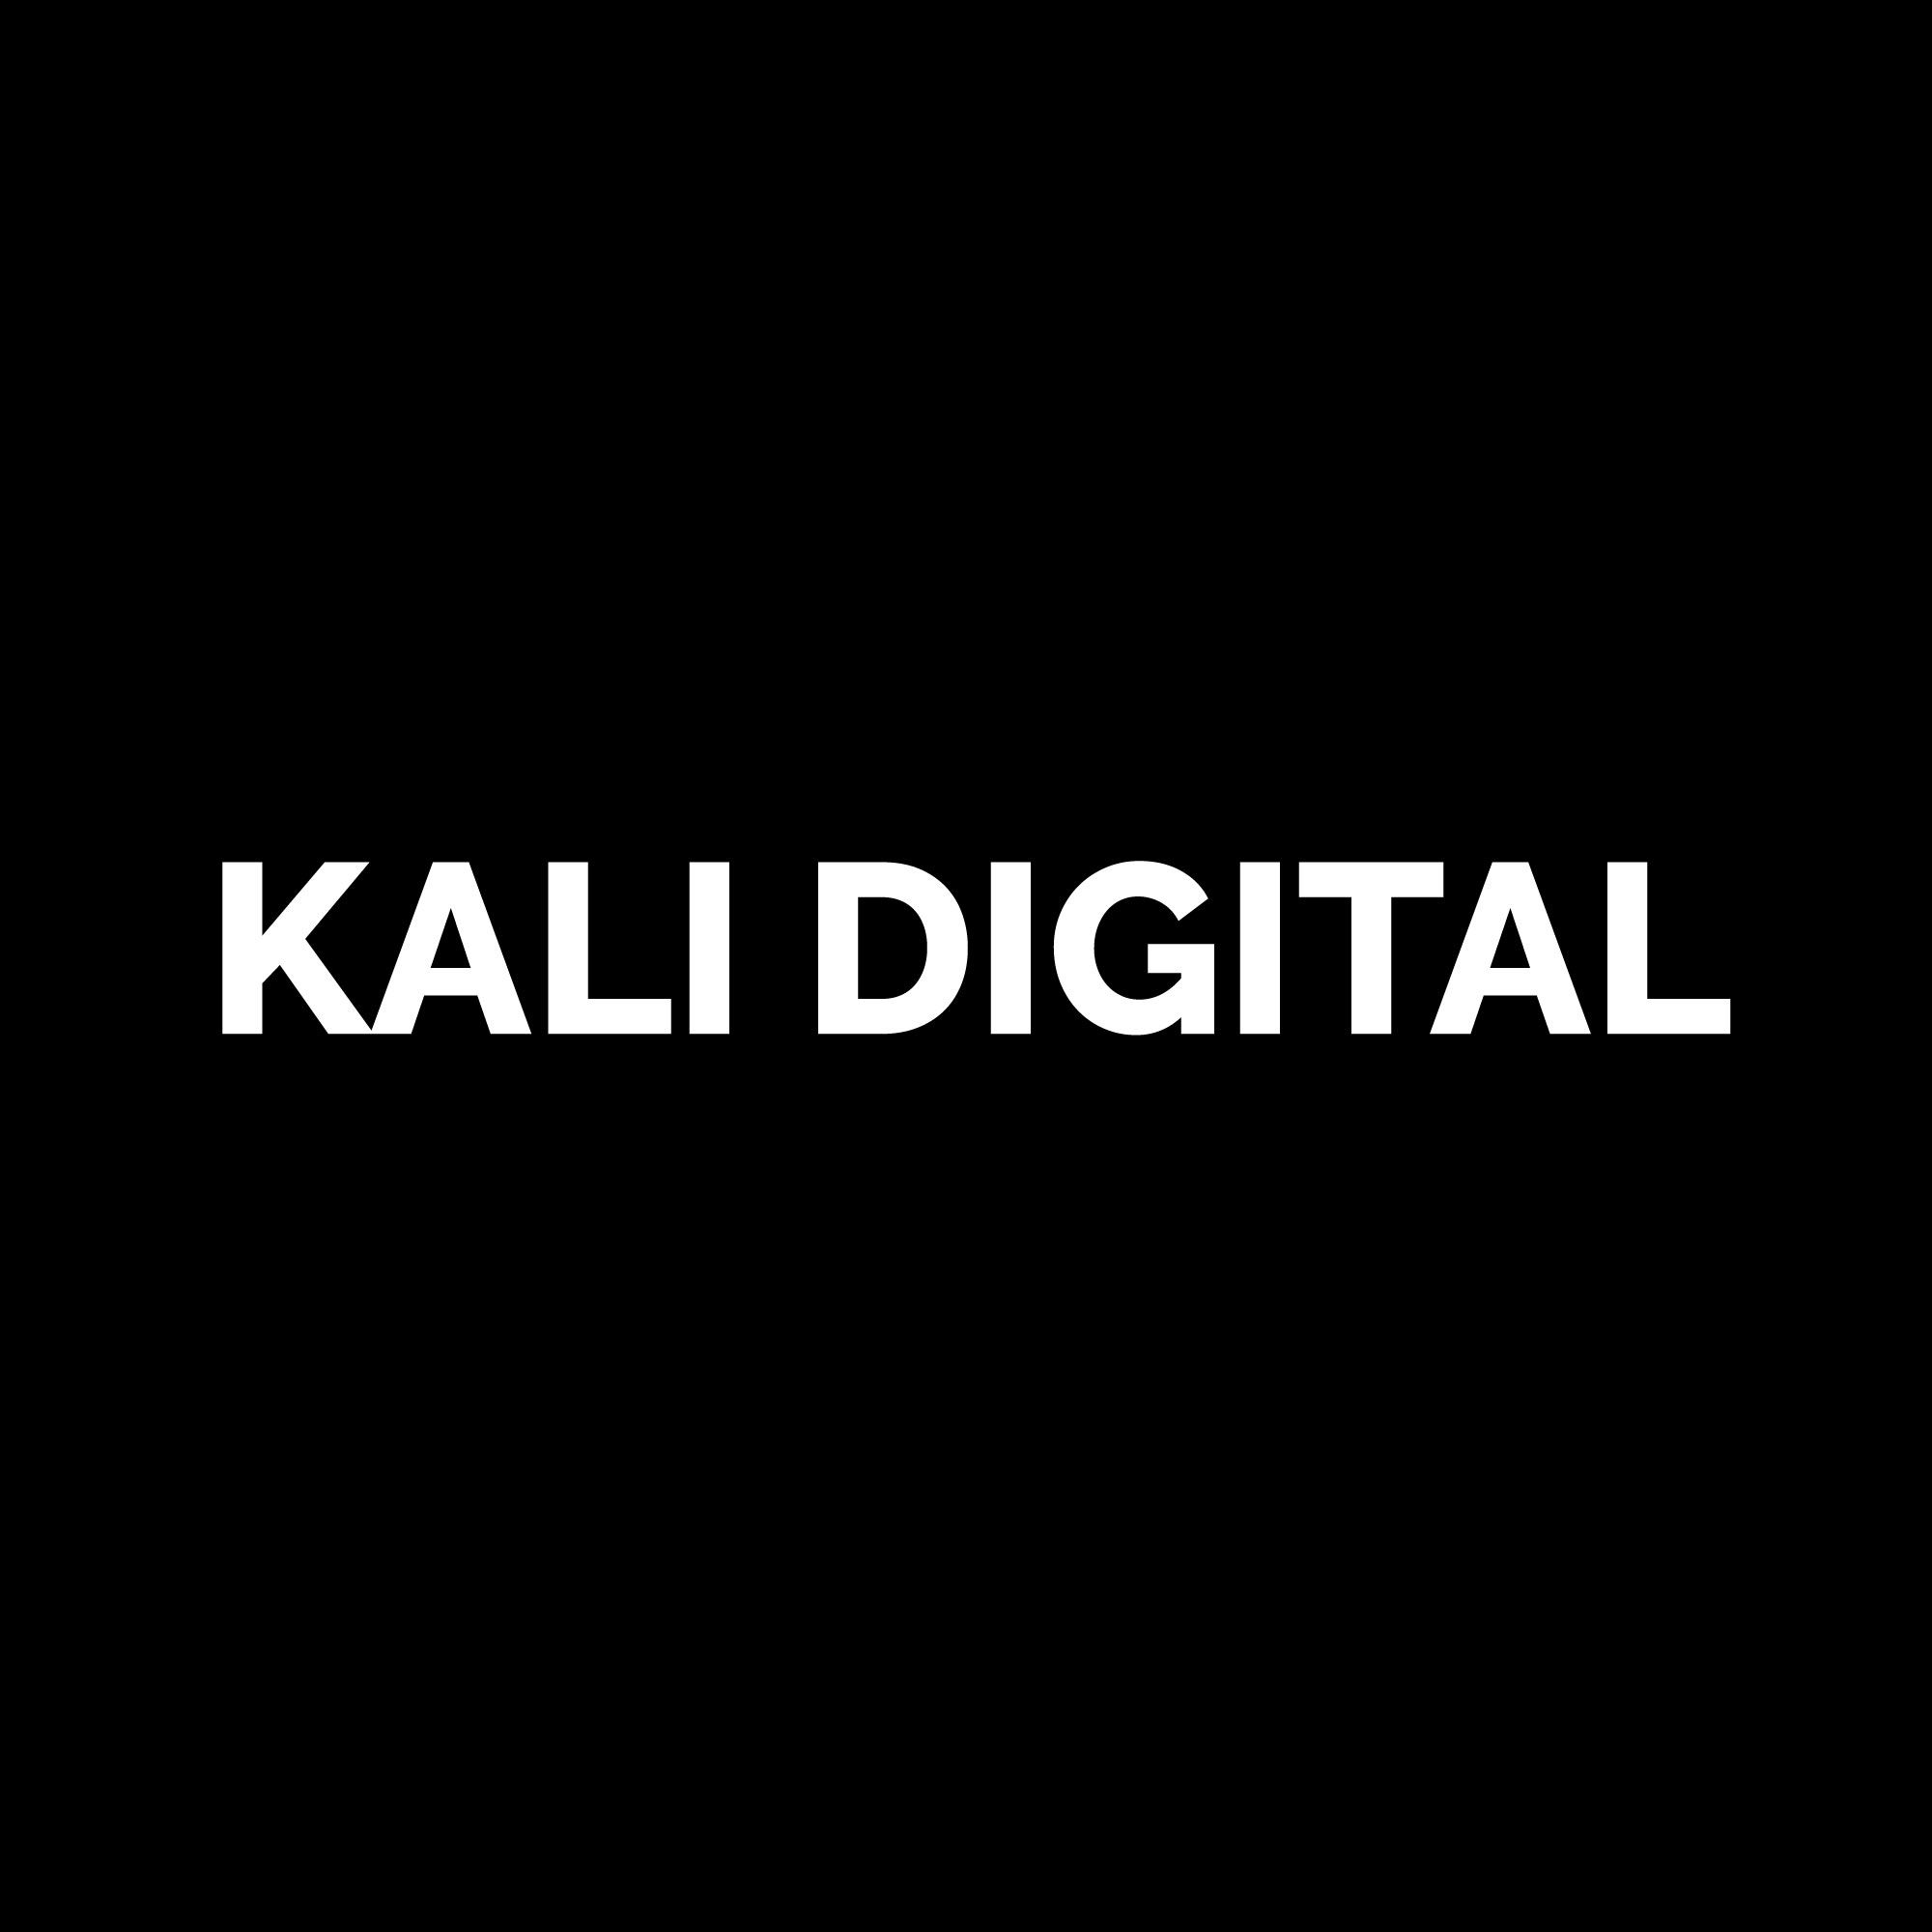 Kali Digital